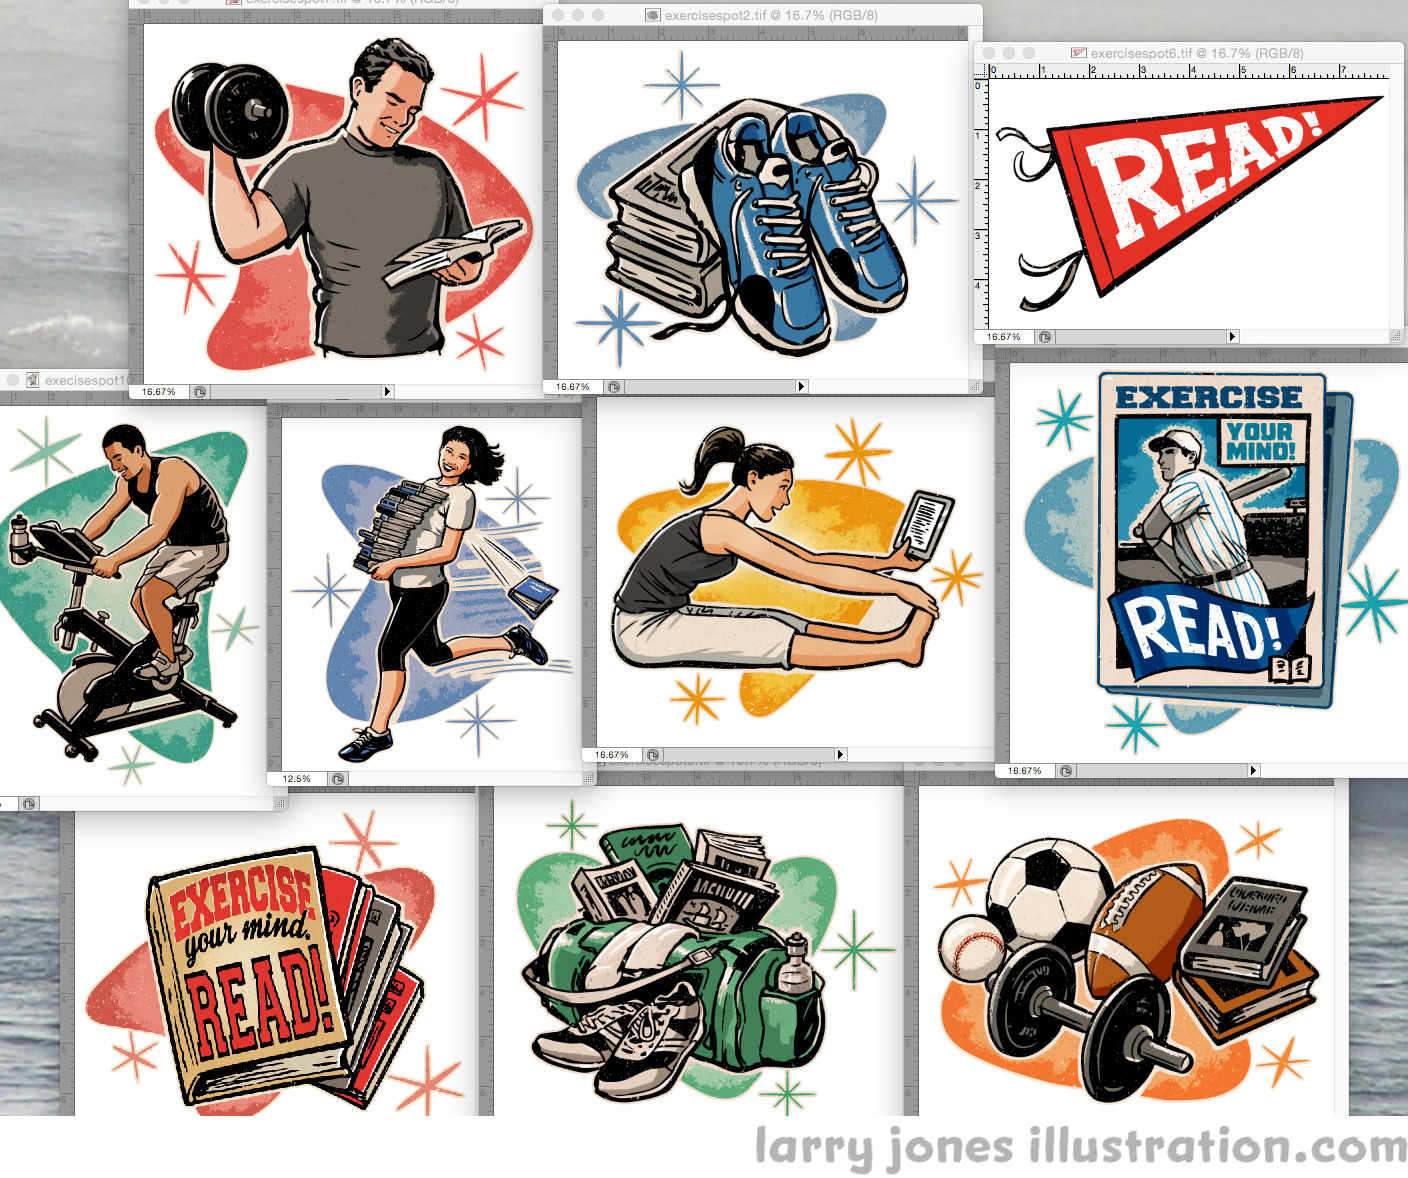 Exercise Your Mind- READ! retro spot illustrations